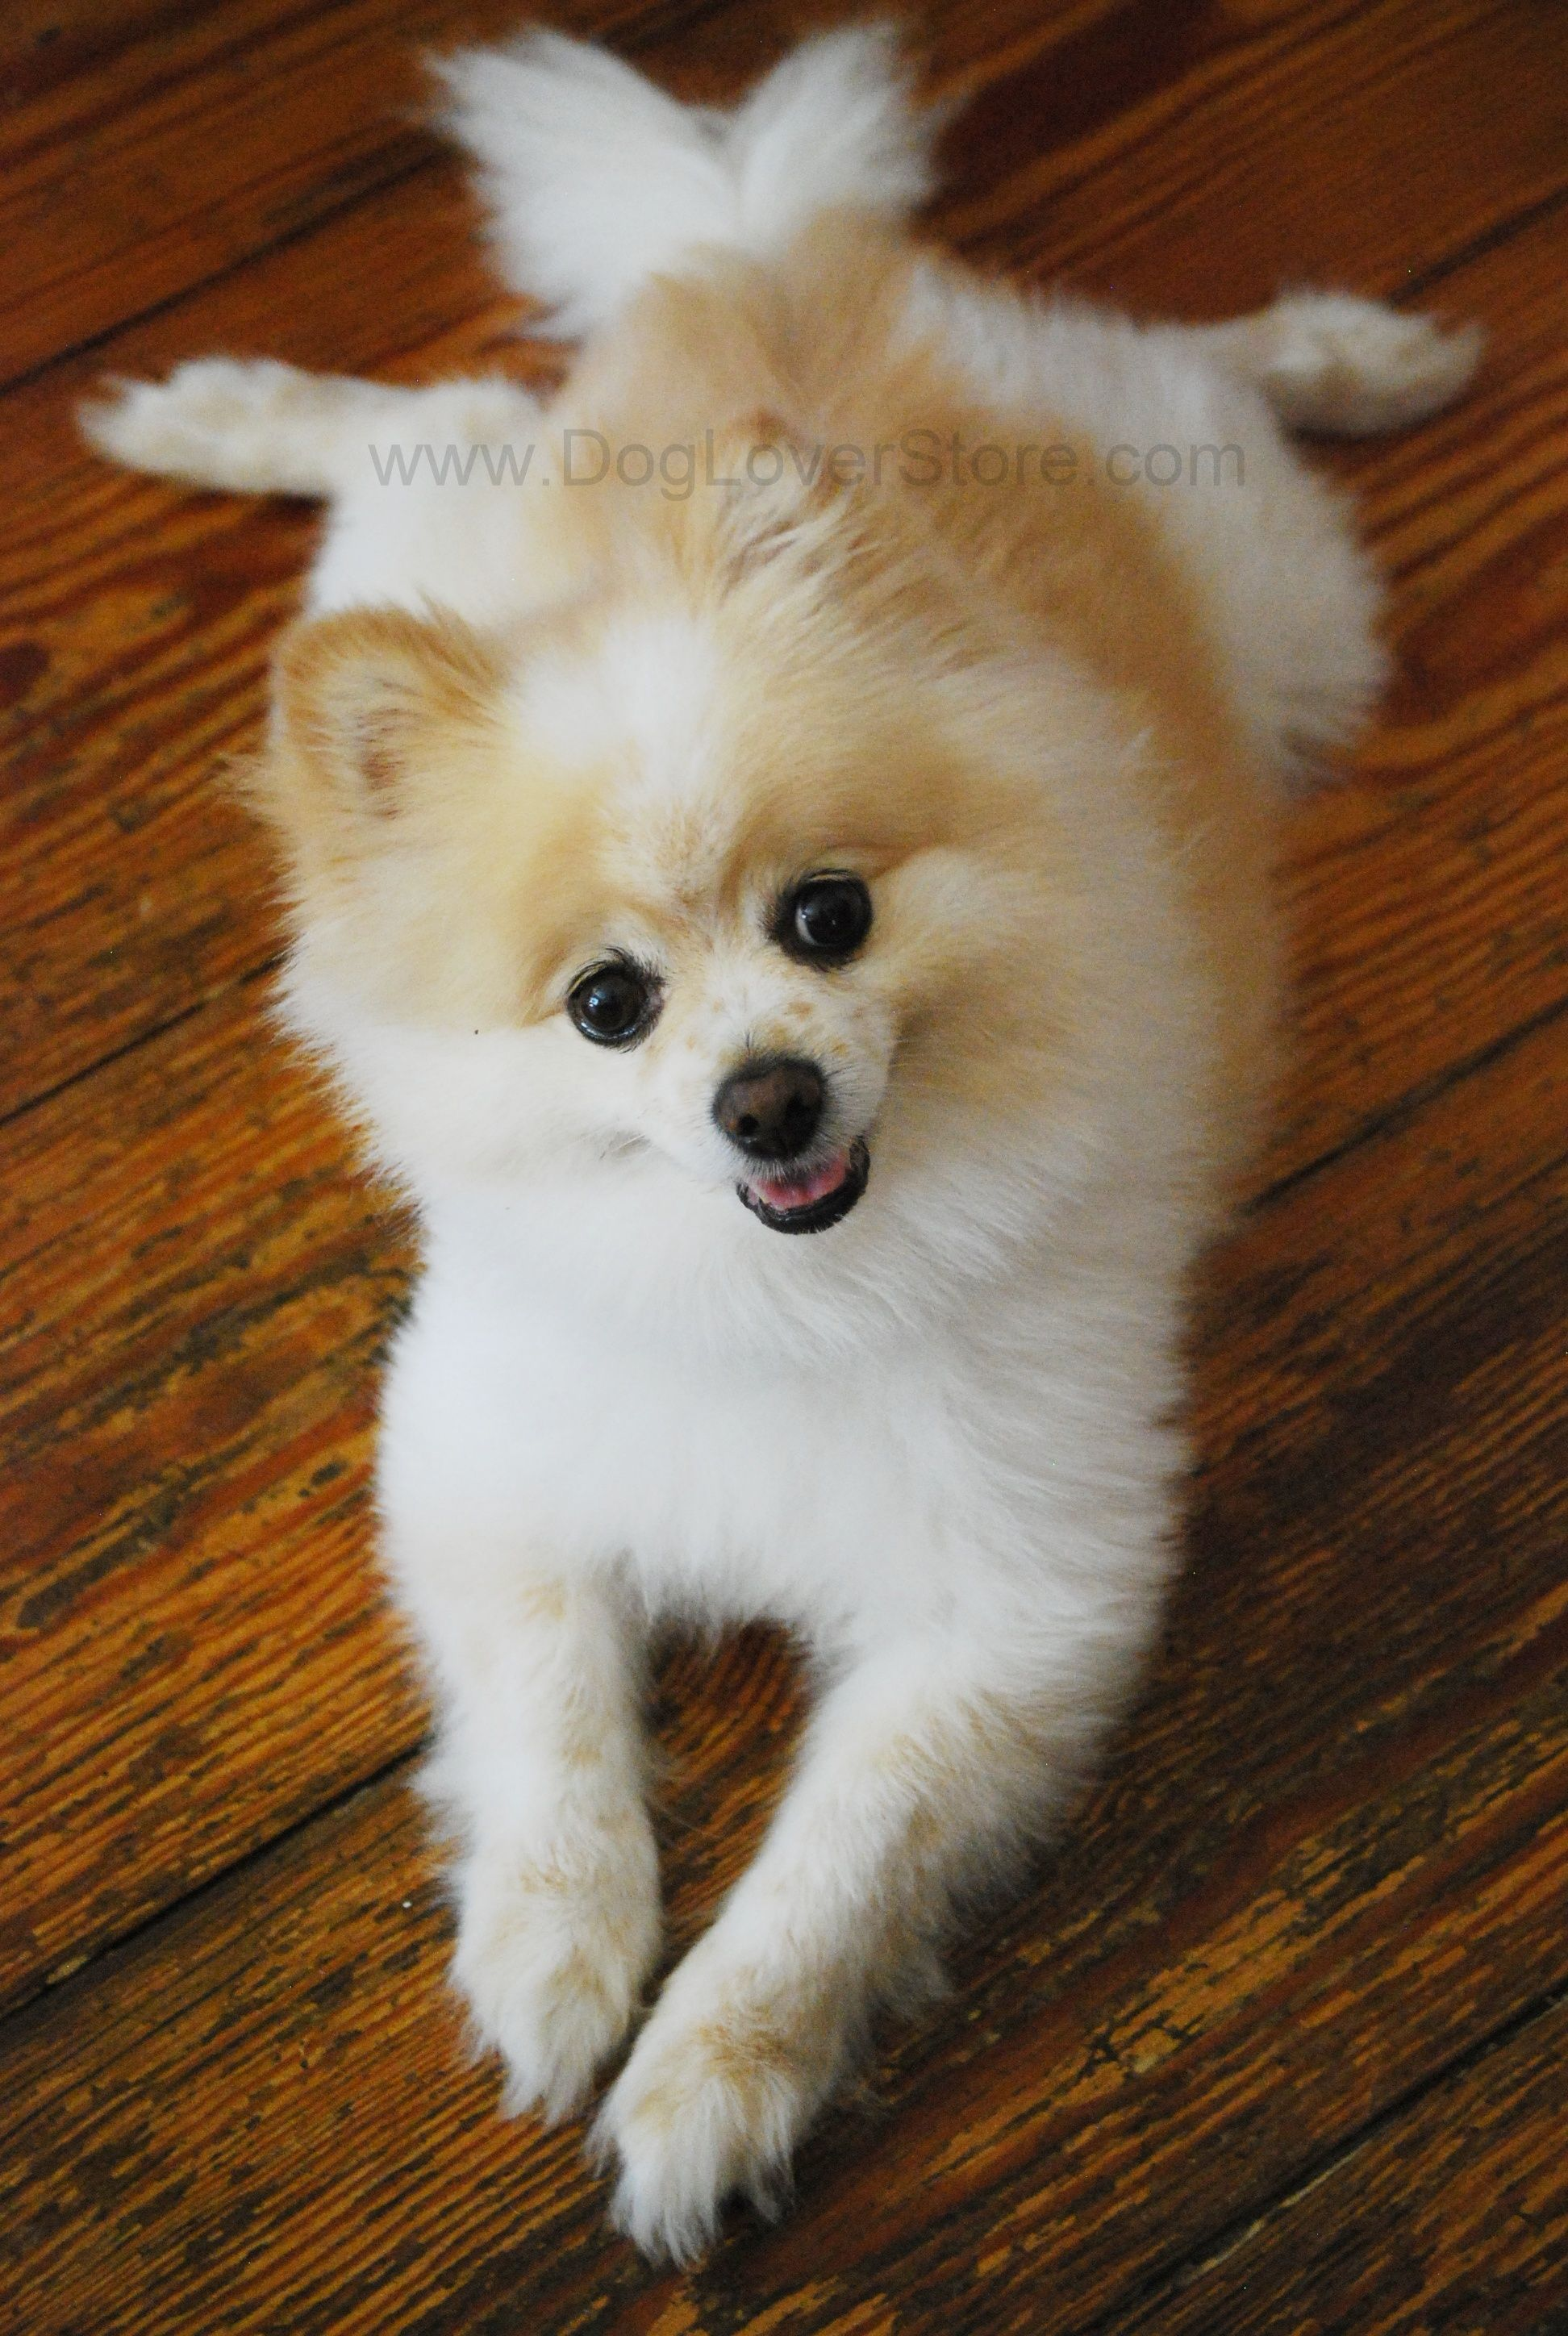 Best Shot Of The Day Pomeranian Dog Mascot Smile Pose Cute